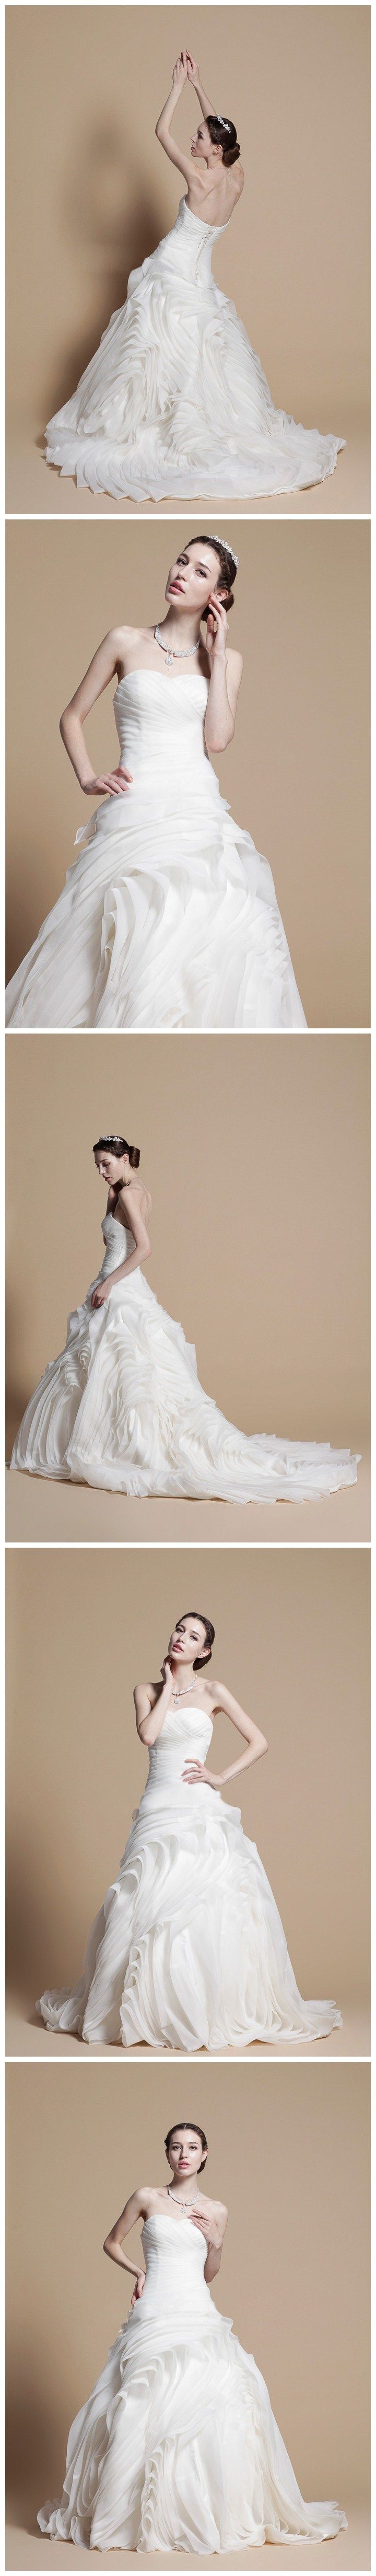 Design your own wedding dress for fun  The  best images about My Style on Pinterest  Picture day